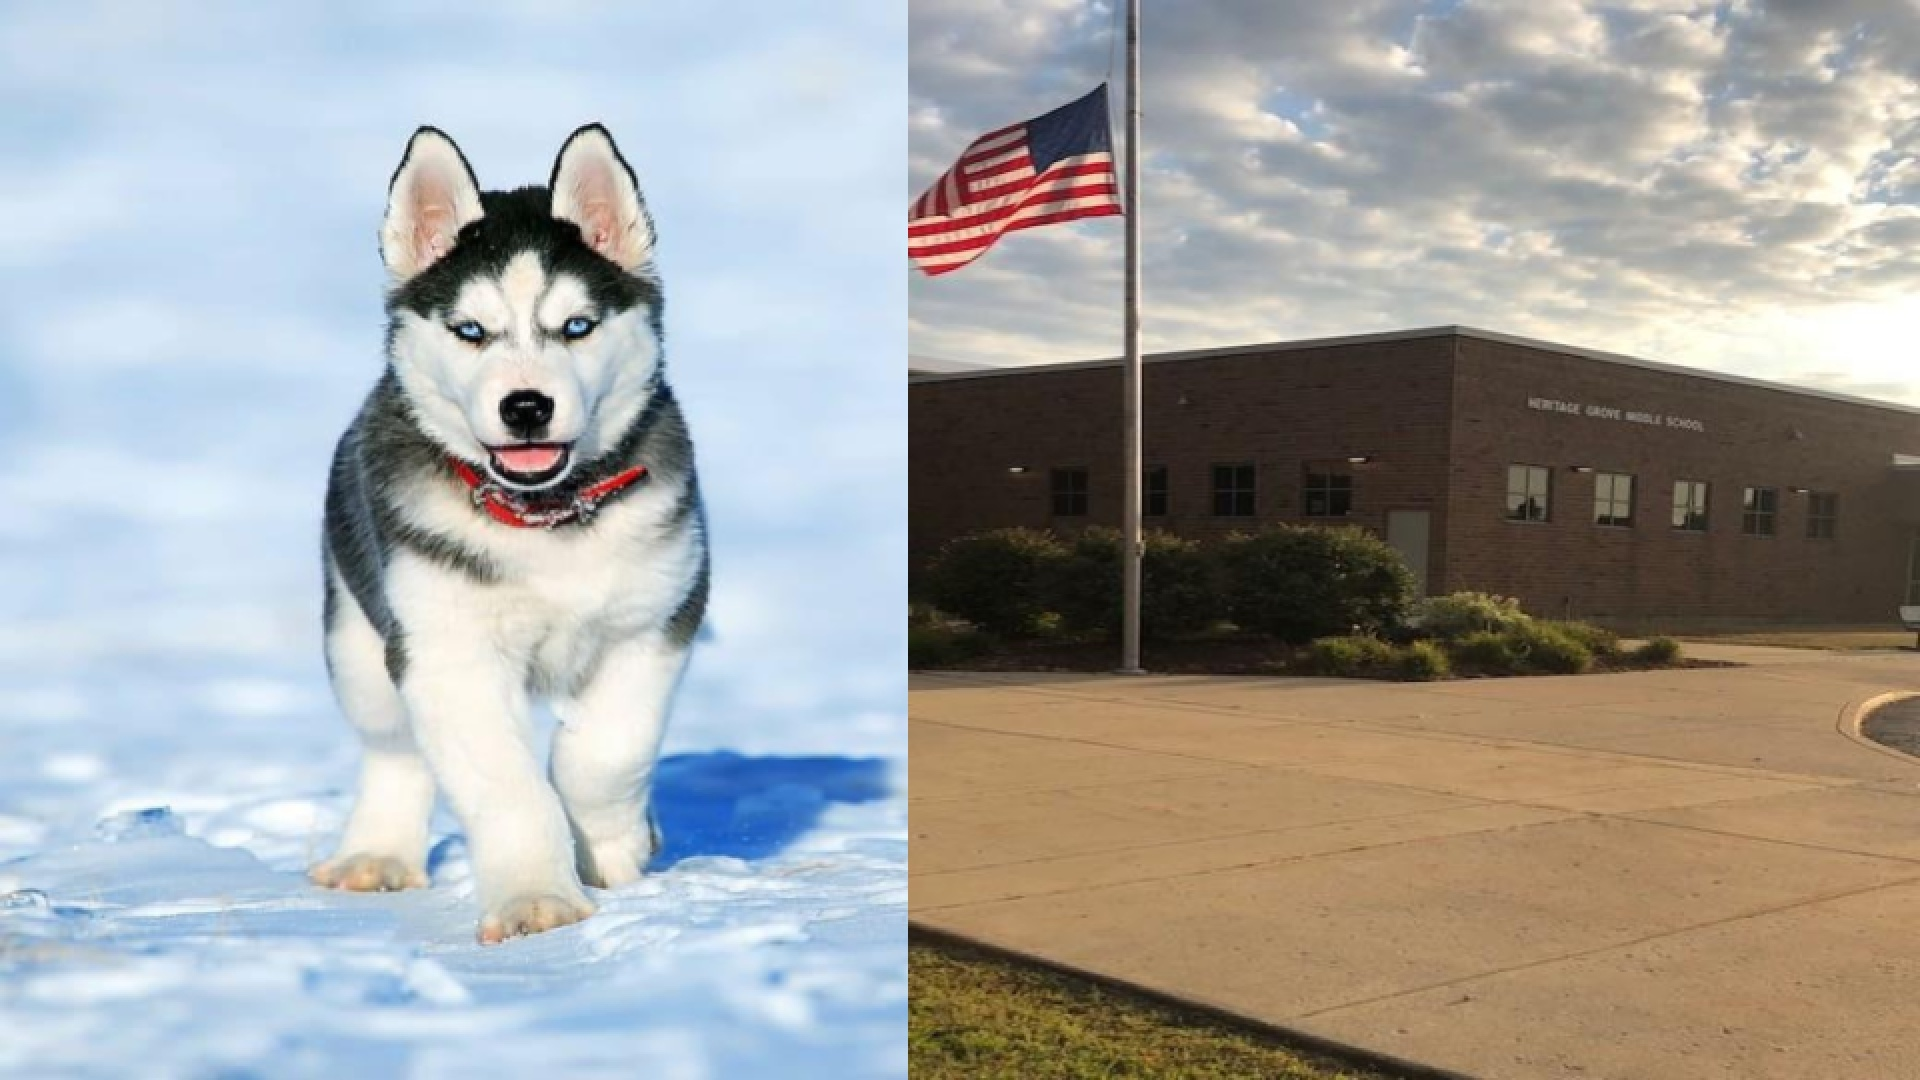 slidshow image - HGMS - Home of the Huskies! -